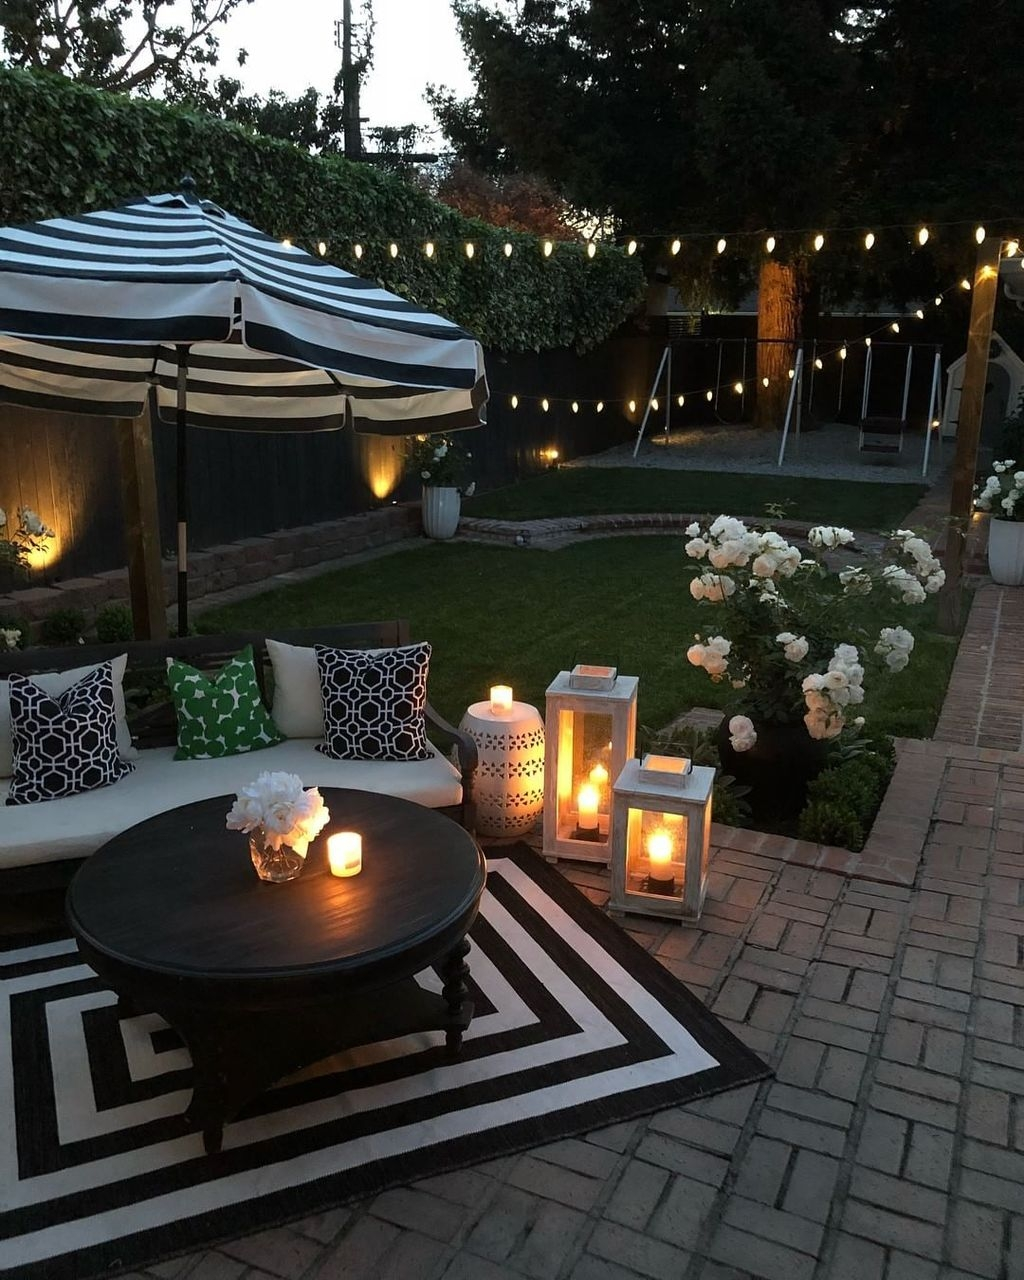 20+ Attractive Small Backyard Design Ideas On A Budget ... on Patio Decor Ideas Cheap id=74428